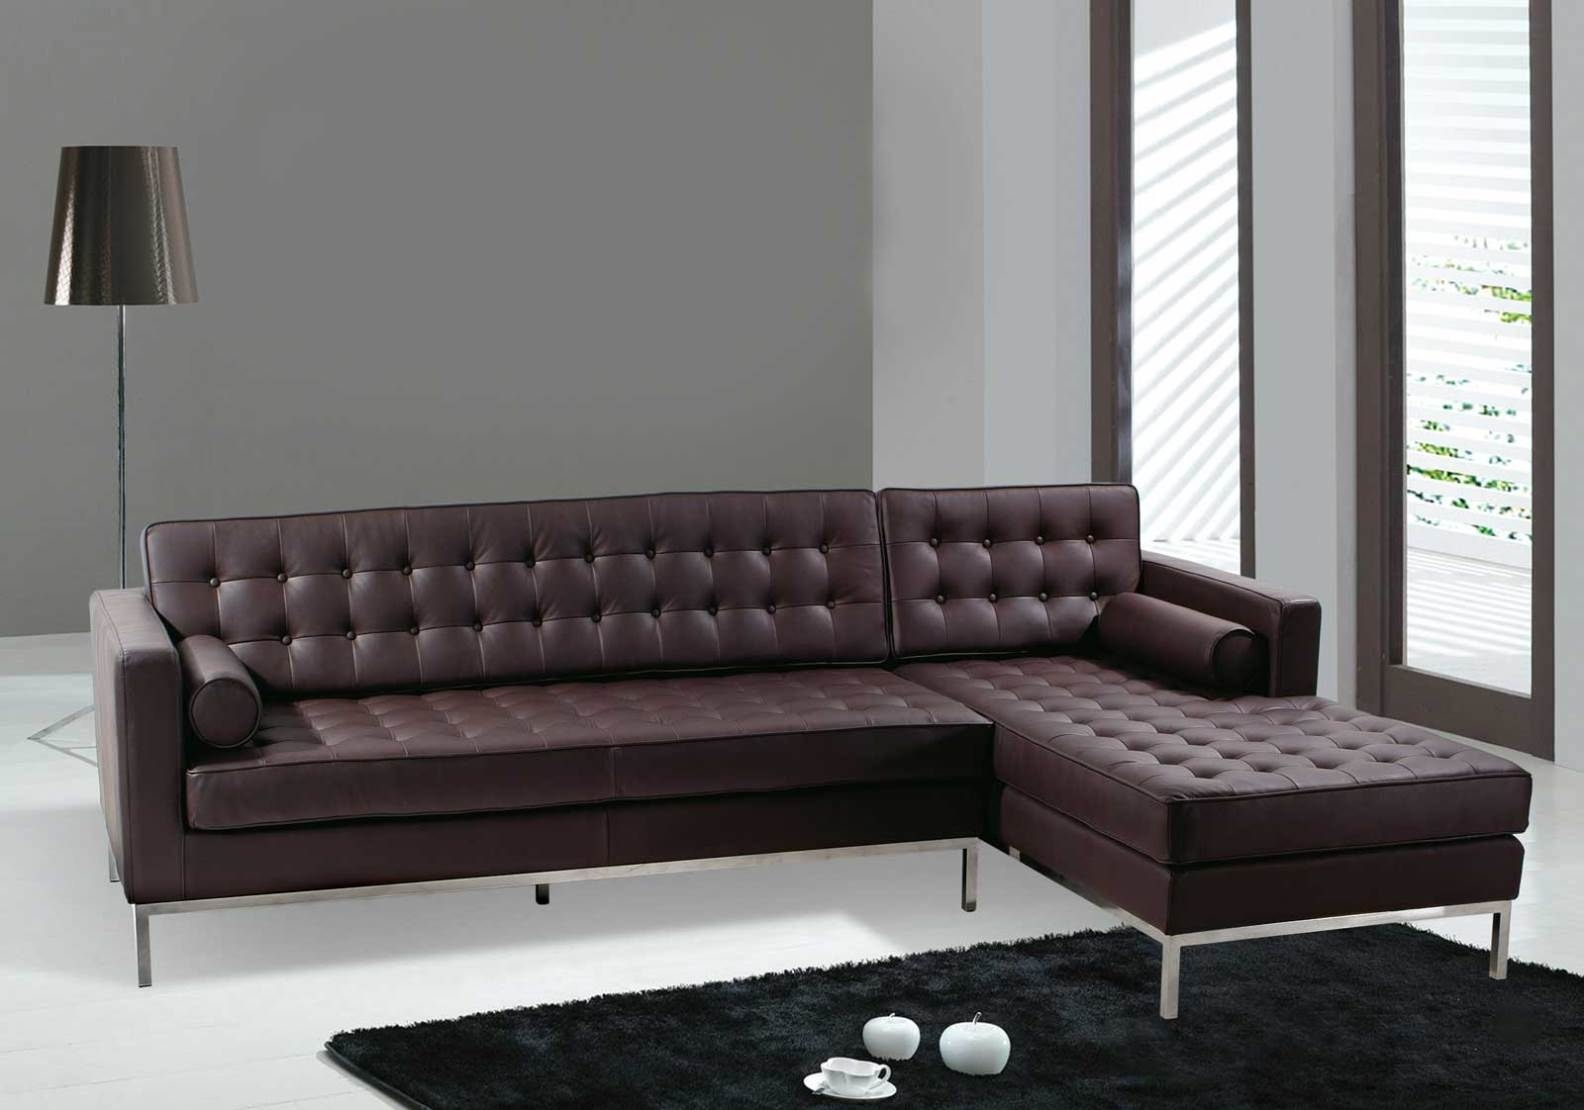 Dobson Leather Modern Sectional Sofa Style Furniture 2017 Photo Blog Intended For Dobson Sectional Sofa (Image 9 of 15)